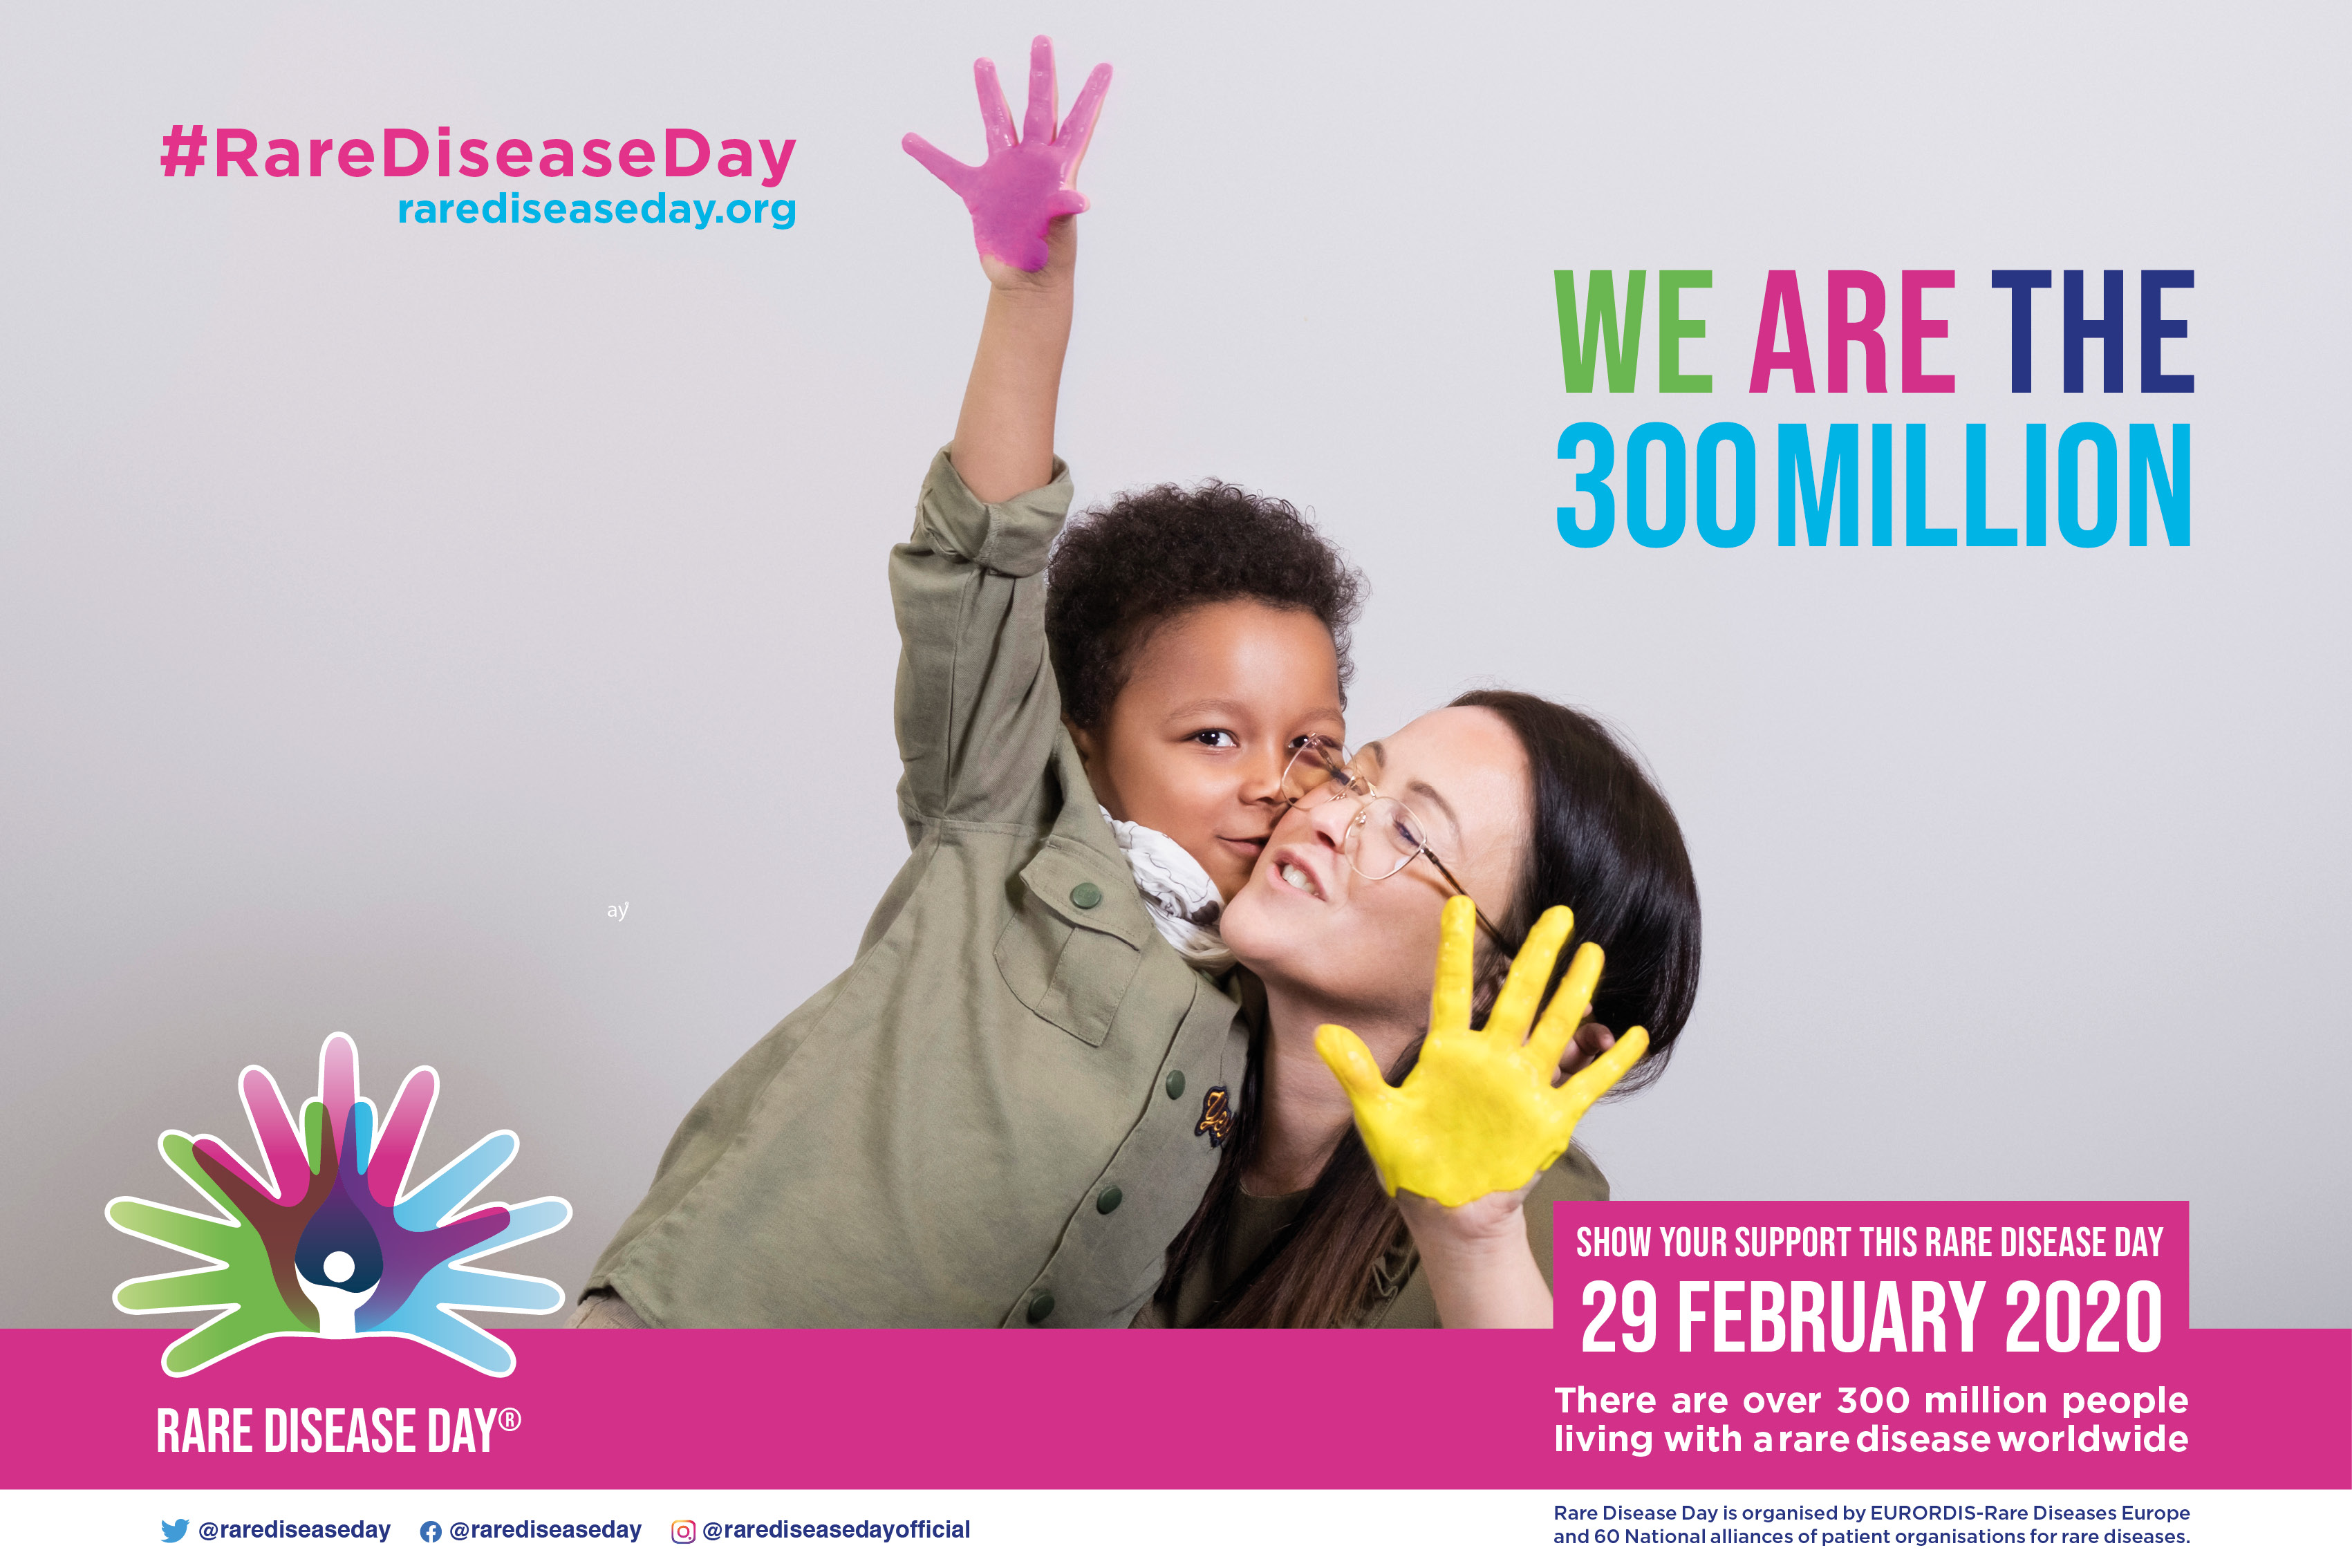 https://img3.rarediseaseday.org/2020/rdd2020-poster-1200x800h.jpg